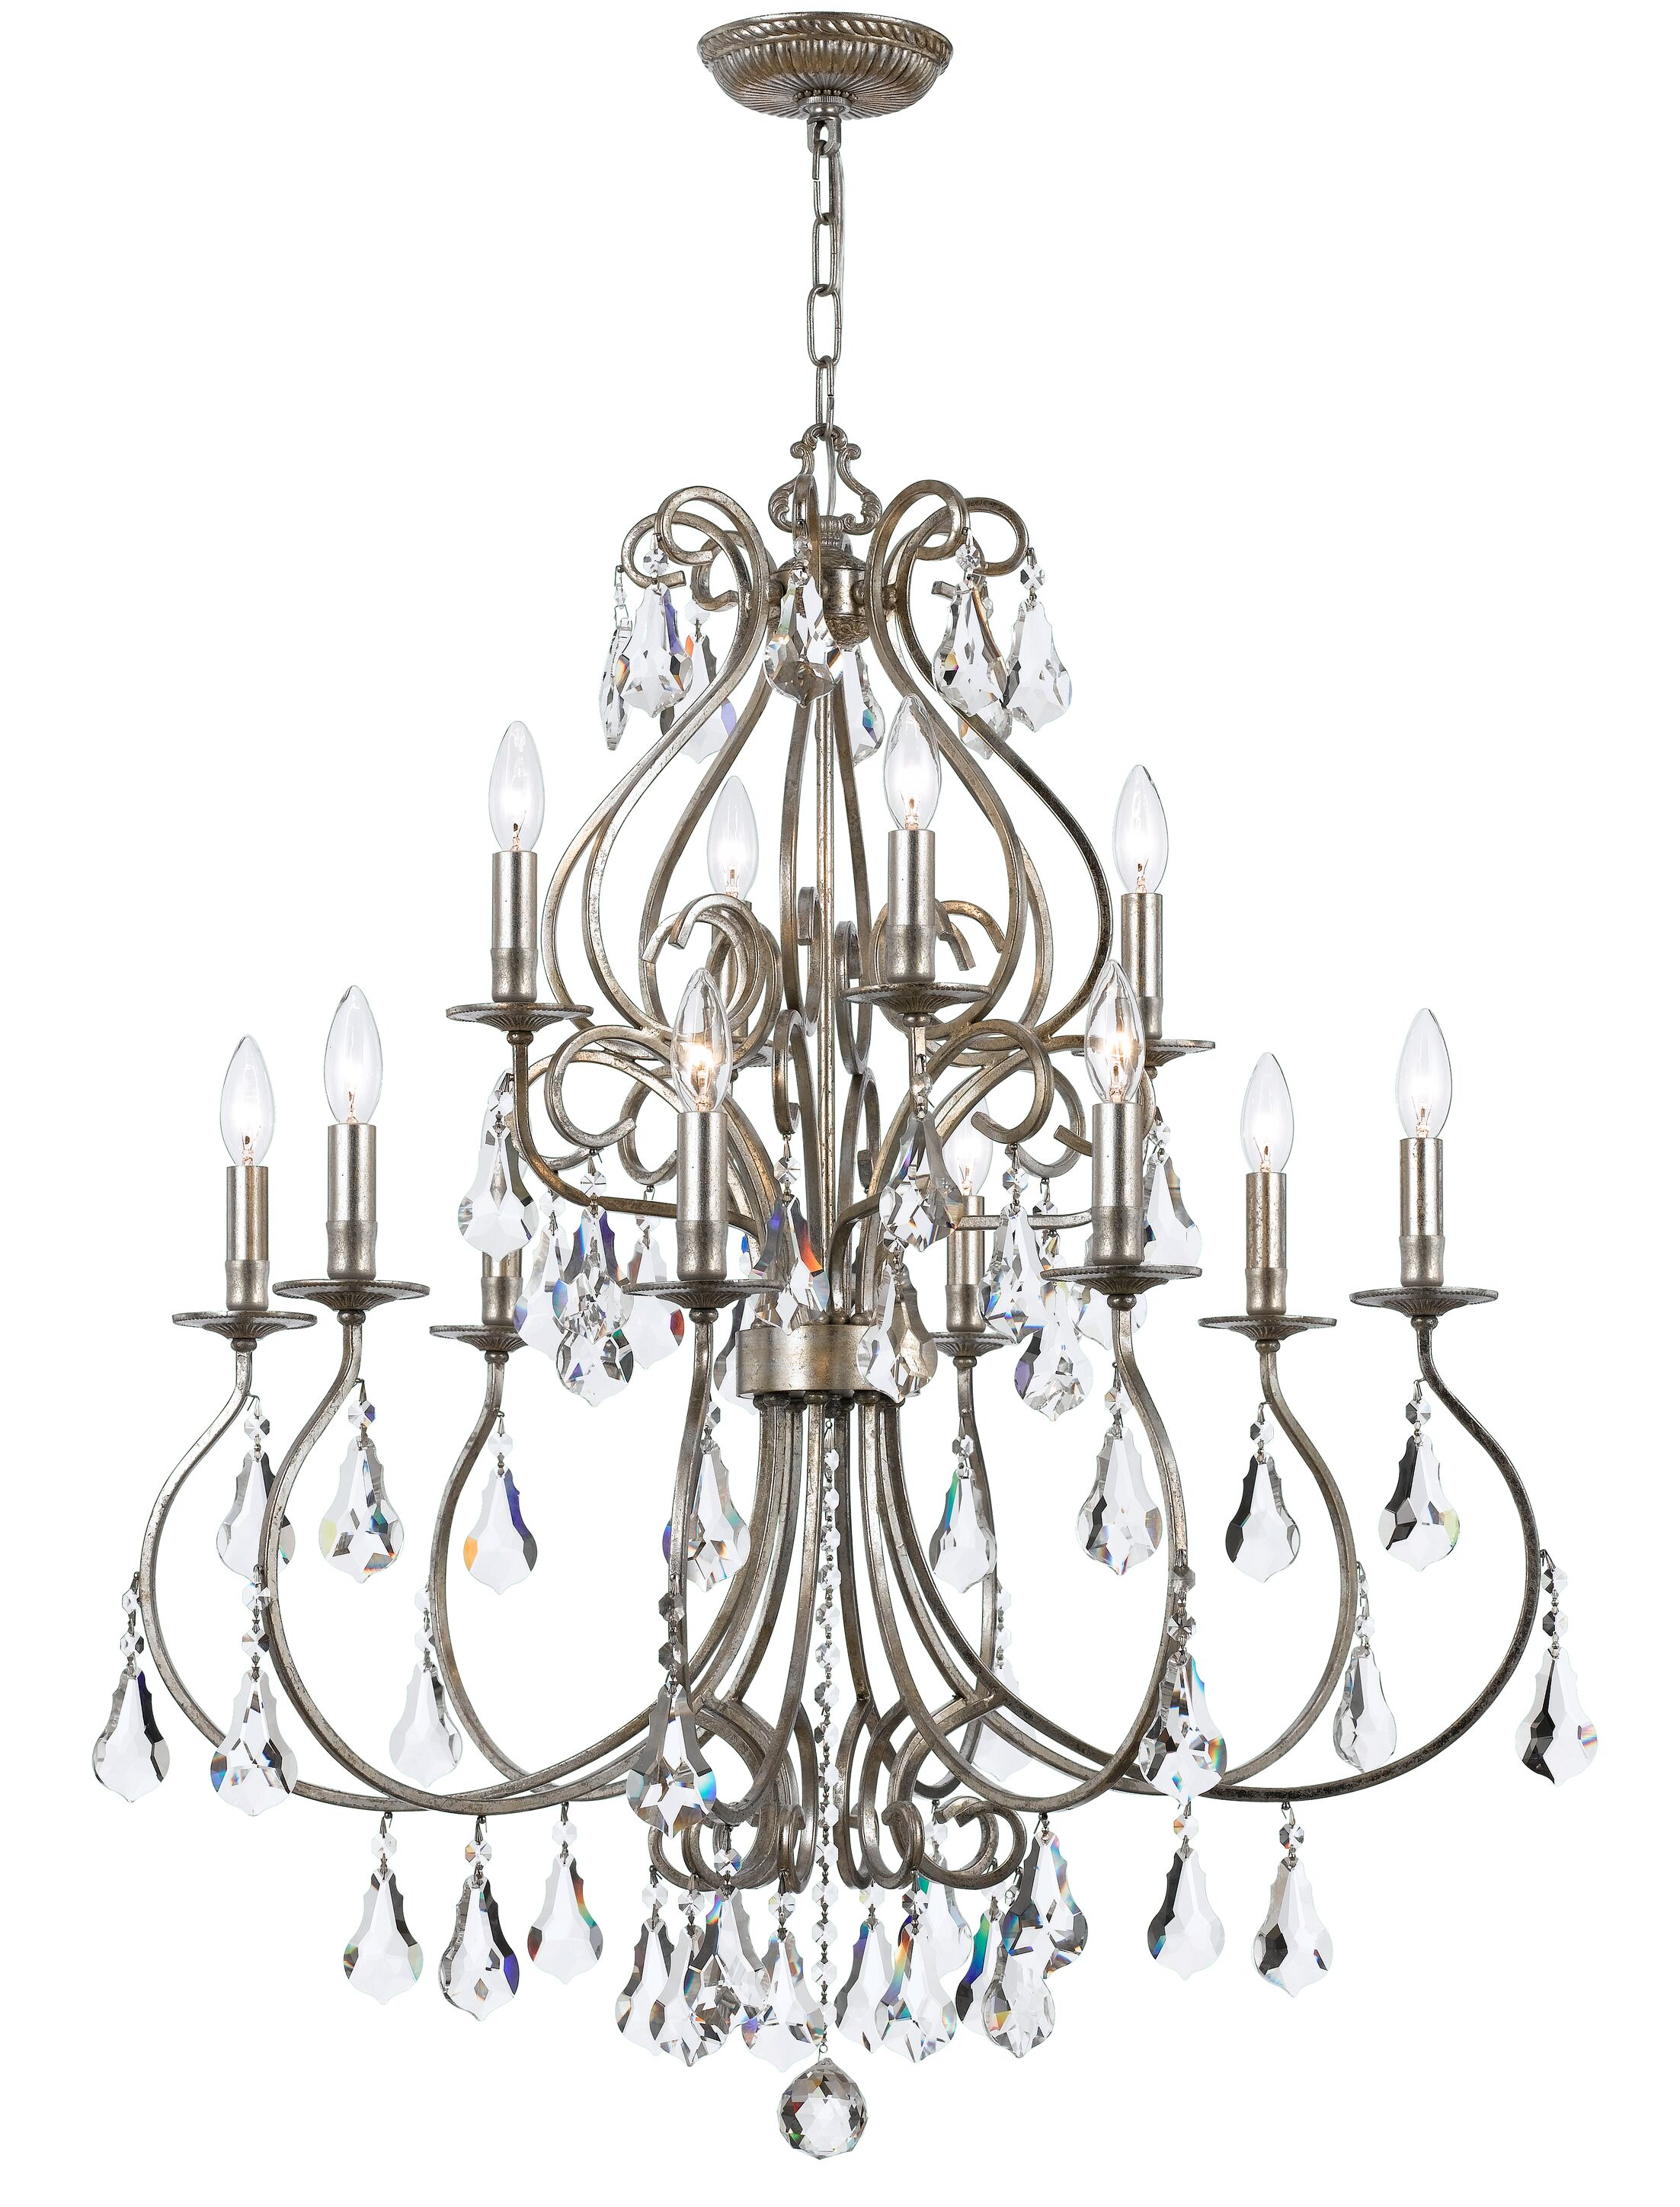 Shaughnessy 12-Light Candle Style Chandelier Finish: Olde Silver